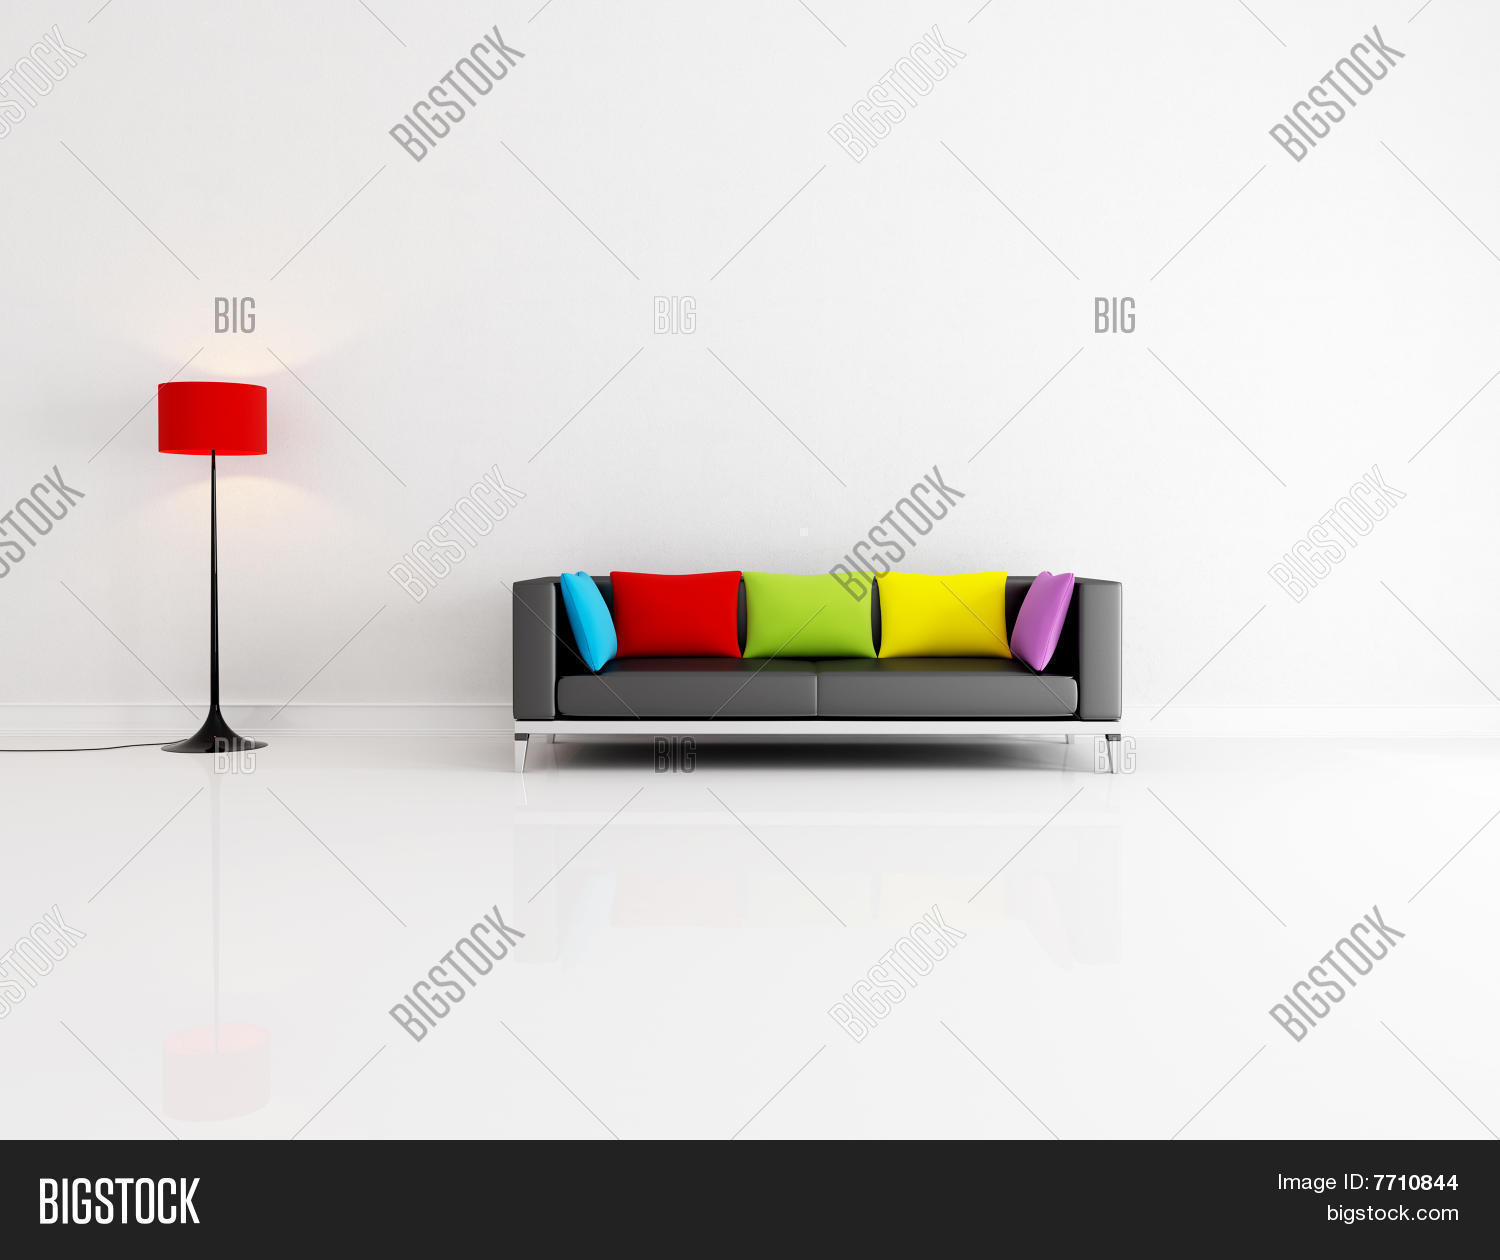 black,colored,comfort,contemporary,couch,creative,cushion,design,domestic,floor,furniture,green,home,horizontal,interior,interior design,lamp,lifestyle,living,living-room,living room,living room interior,lounge,minimalist,modern,modern living room,pillow,plaster,purple,red,relax,room,sit,sofa,style,white,yellow